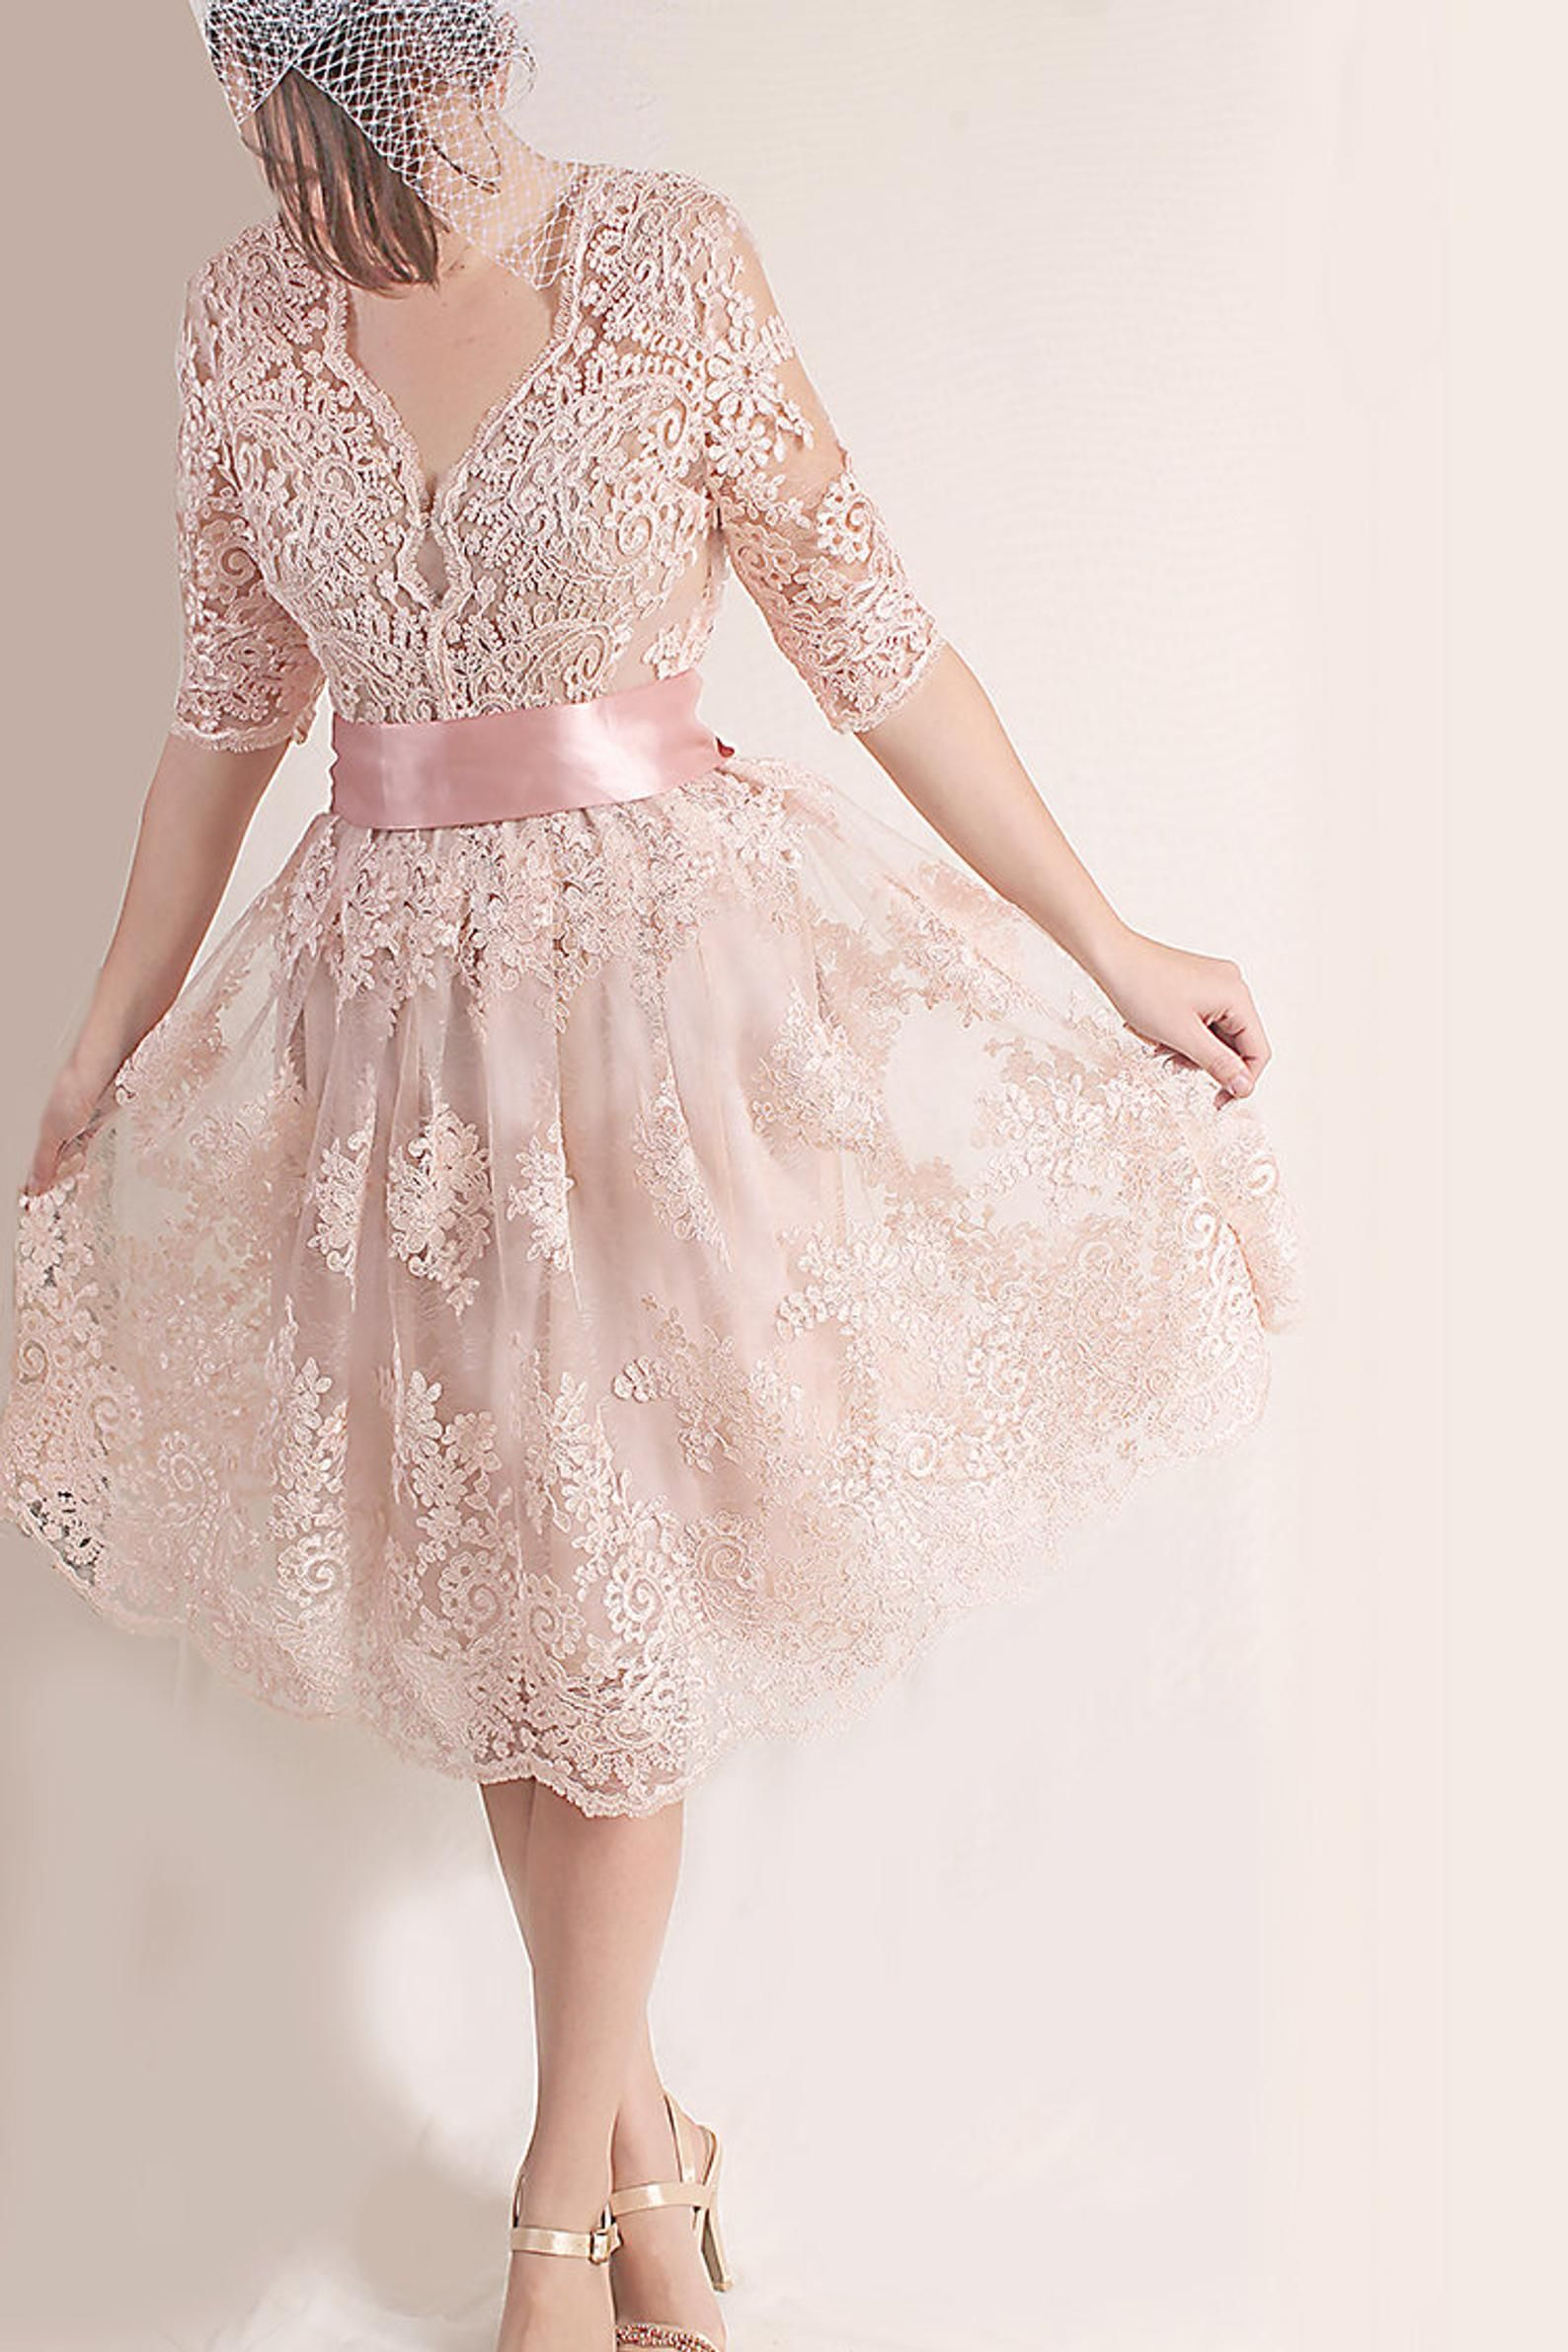 Plus Size Lace Short Dress Blush Pink Wedding Party Gown Etsy In 2020 Lace Pink Dress Short Lace Dress Blush Wedding Dress Lace